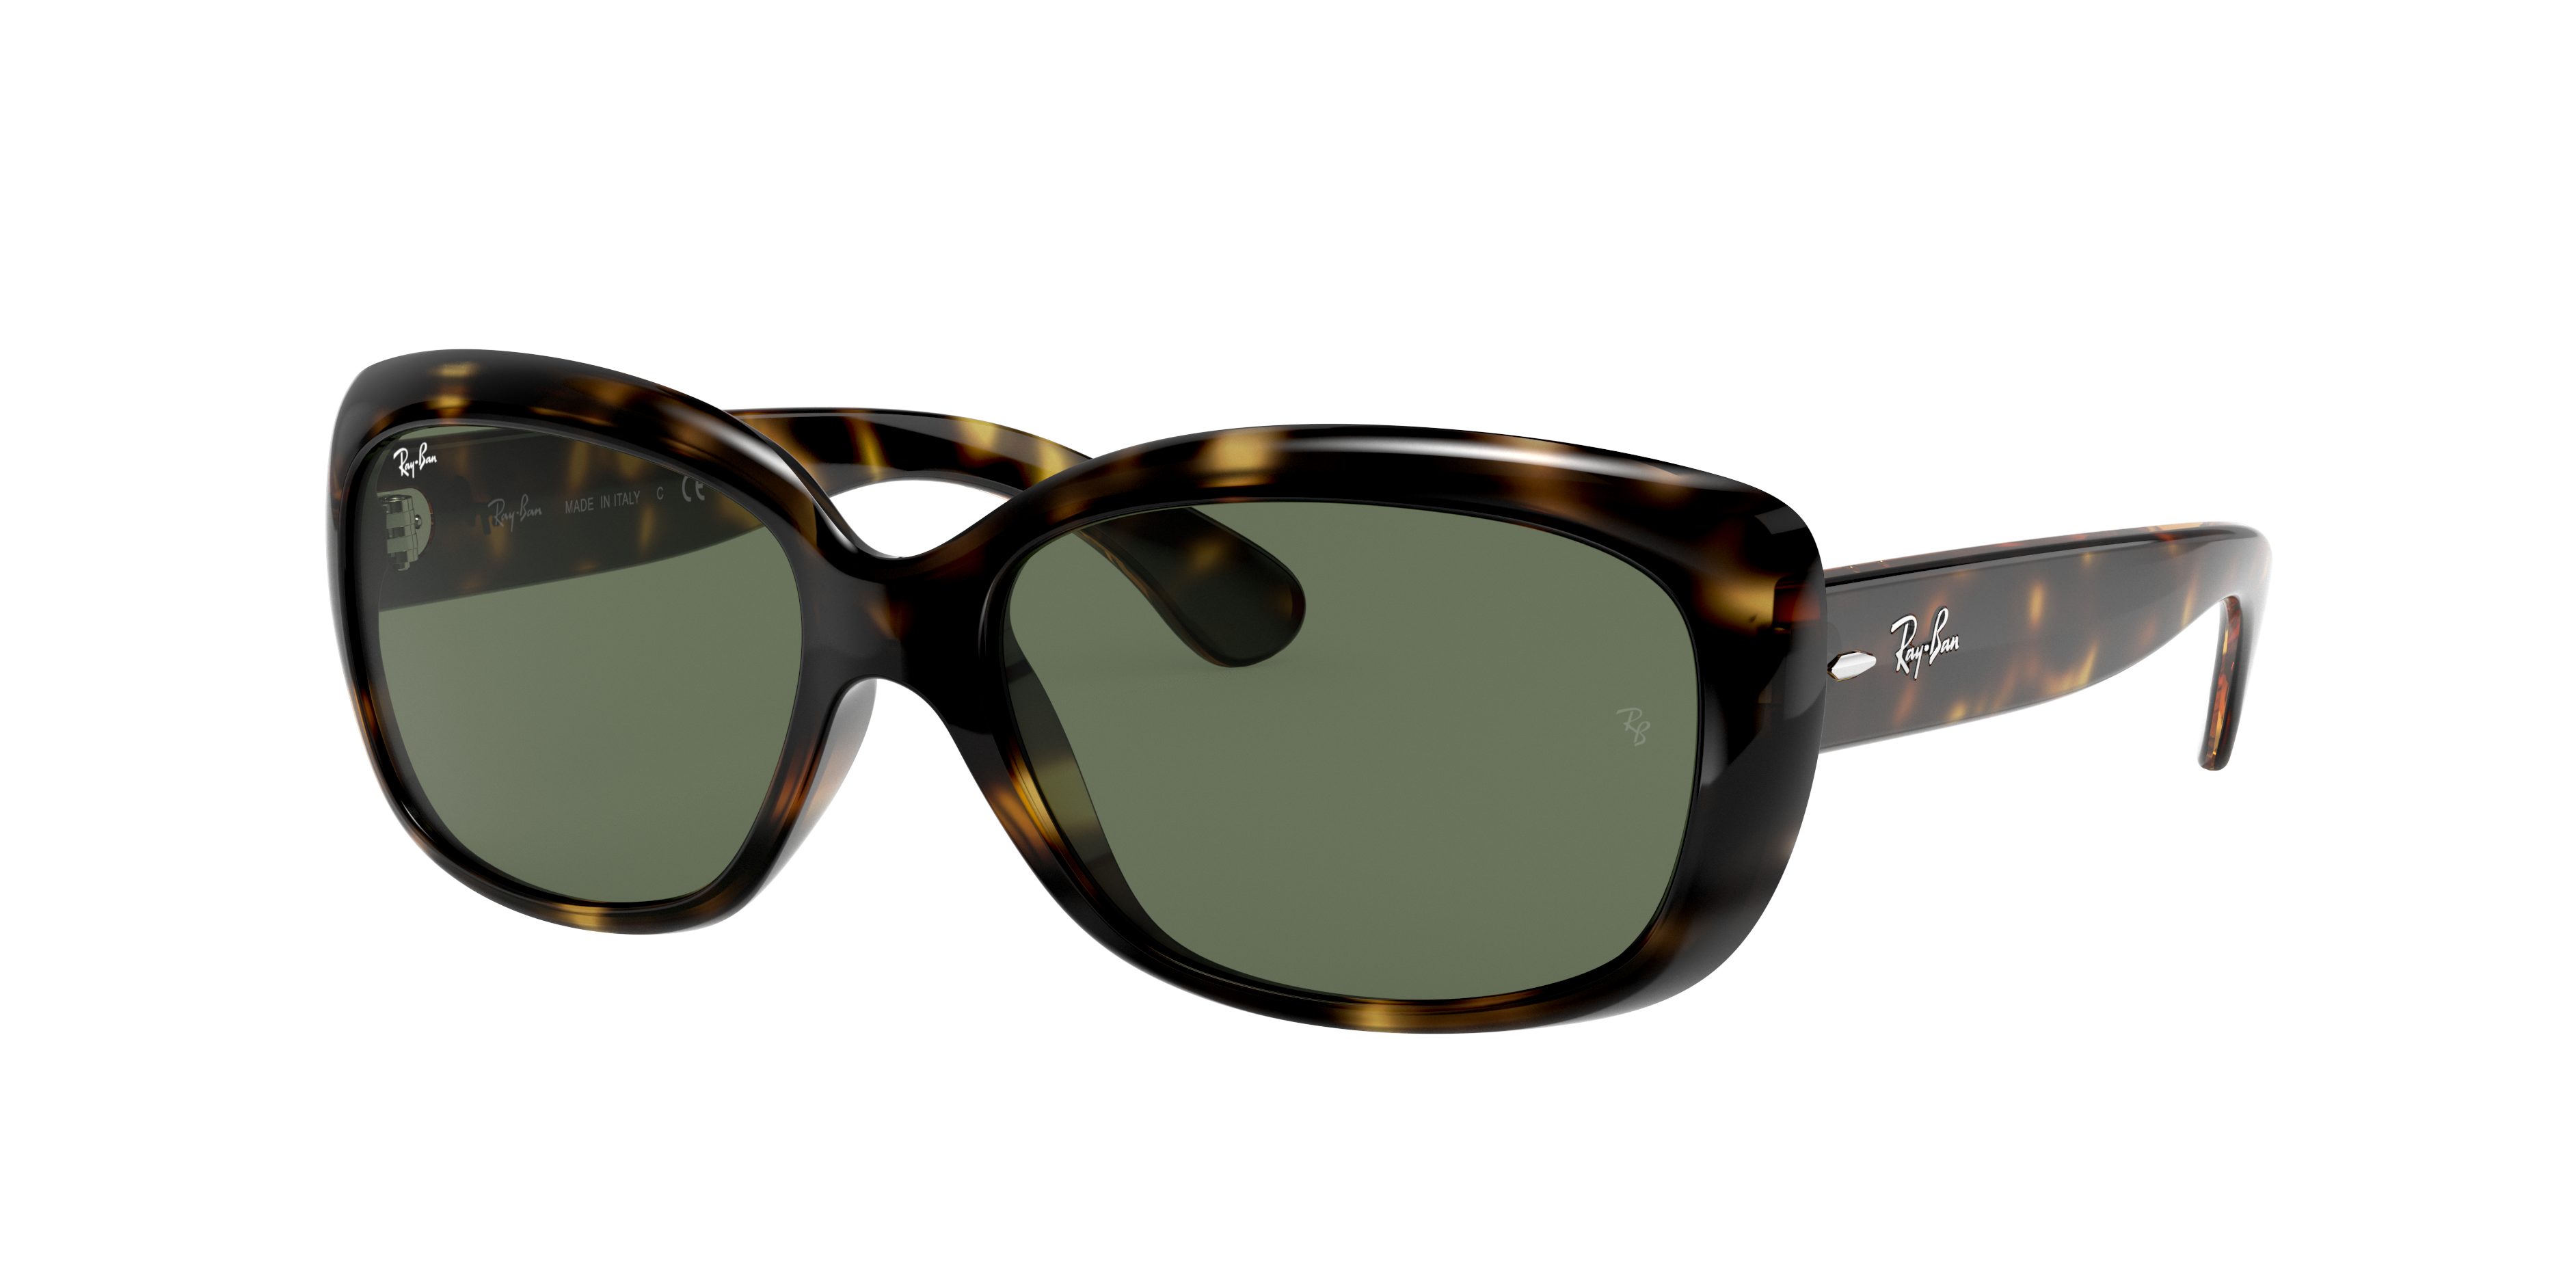 Ray-Ban Jackie Ohh Tortoise, Green Lenses - RB4101